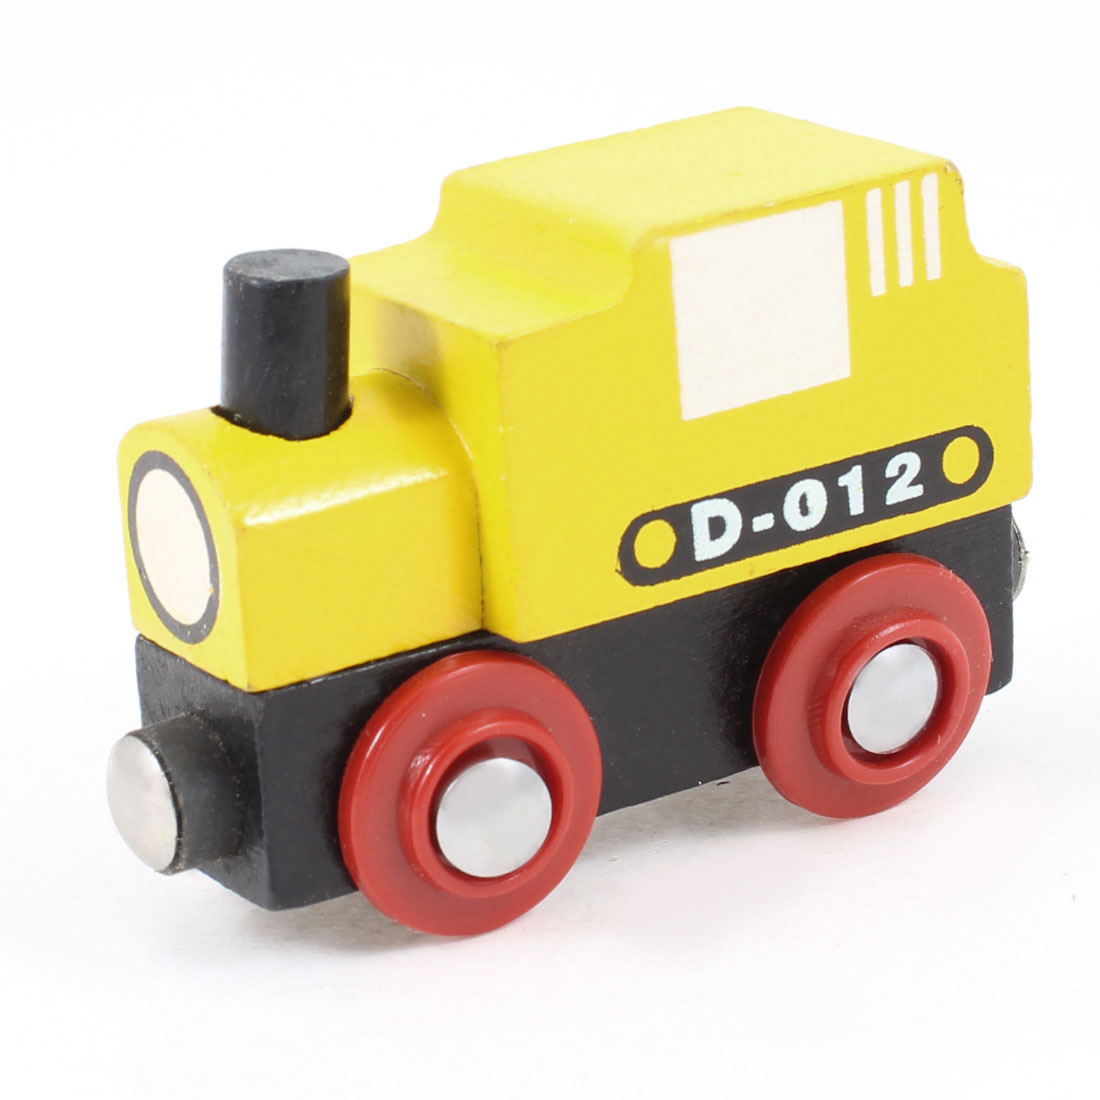 Plaything Black Yellow Red Locomotive Shape Wooden Toy for Kids